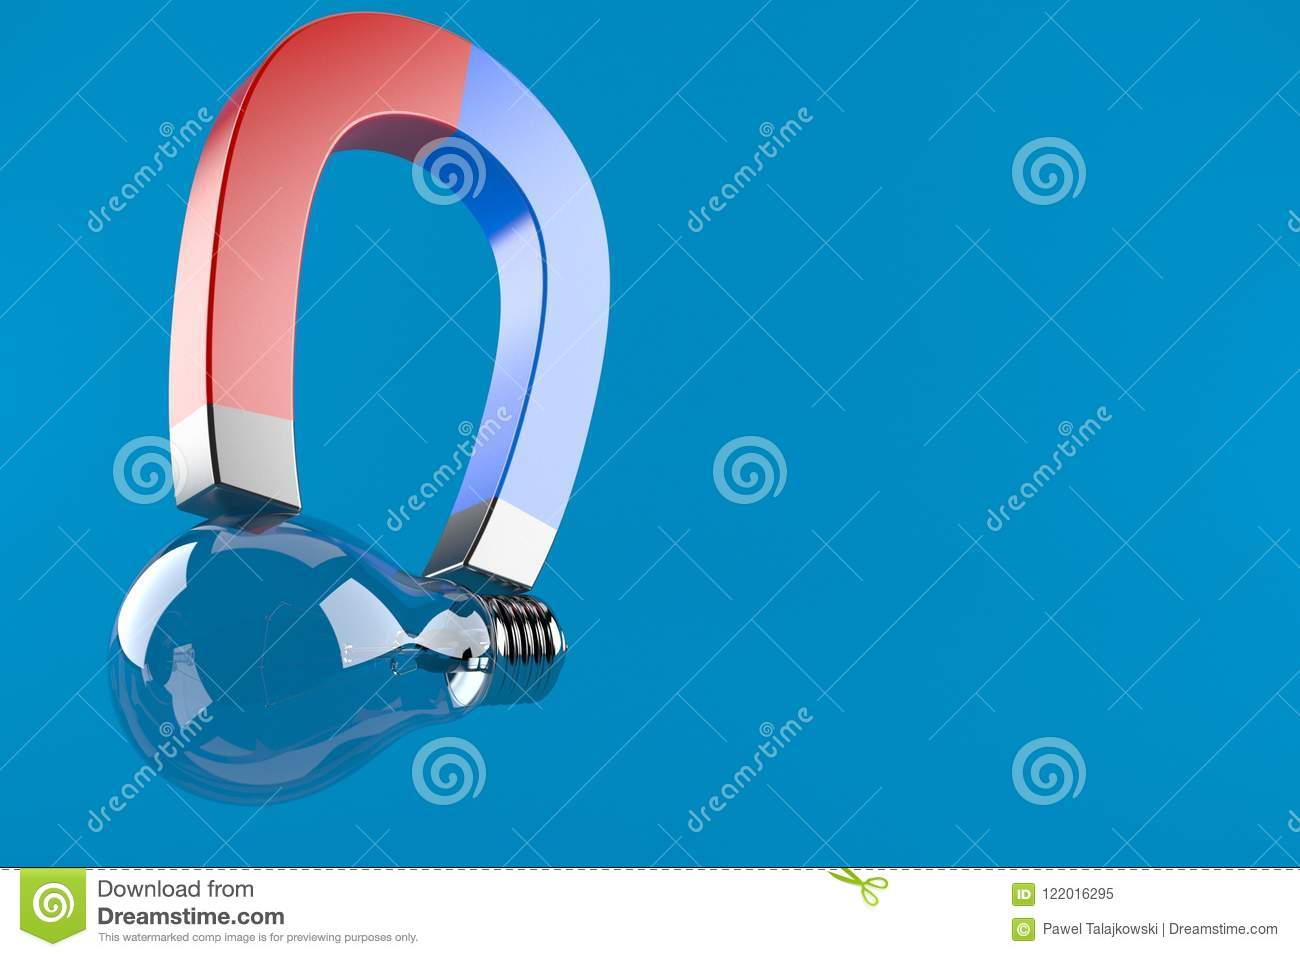 Light Bulb With Horseshoe Magnet Stock Illustration All Electrical Appliances Including Bulbs Stereos And Download Of Electric Electricity 122016295